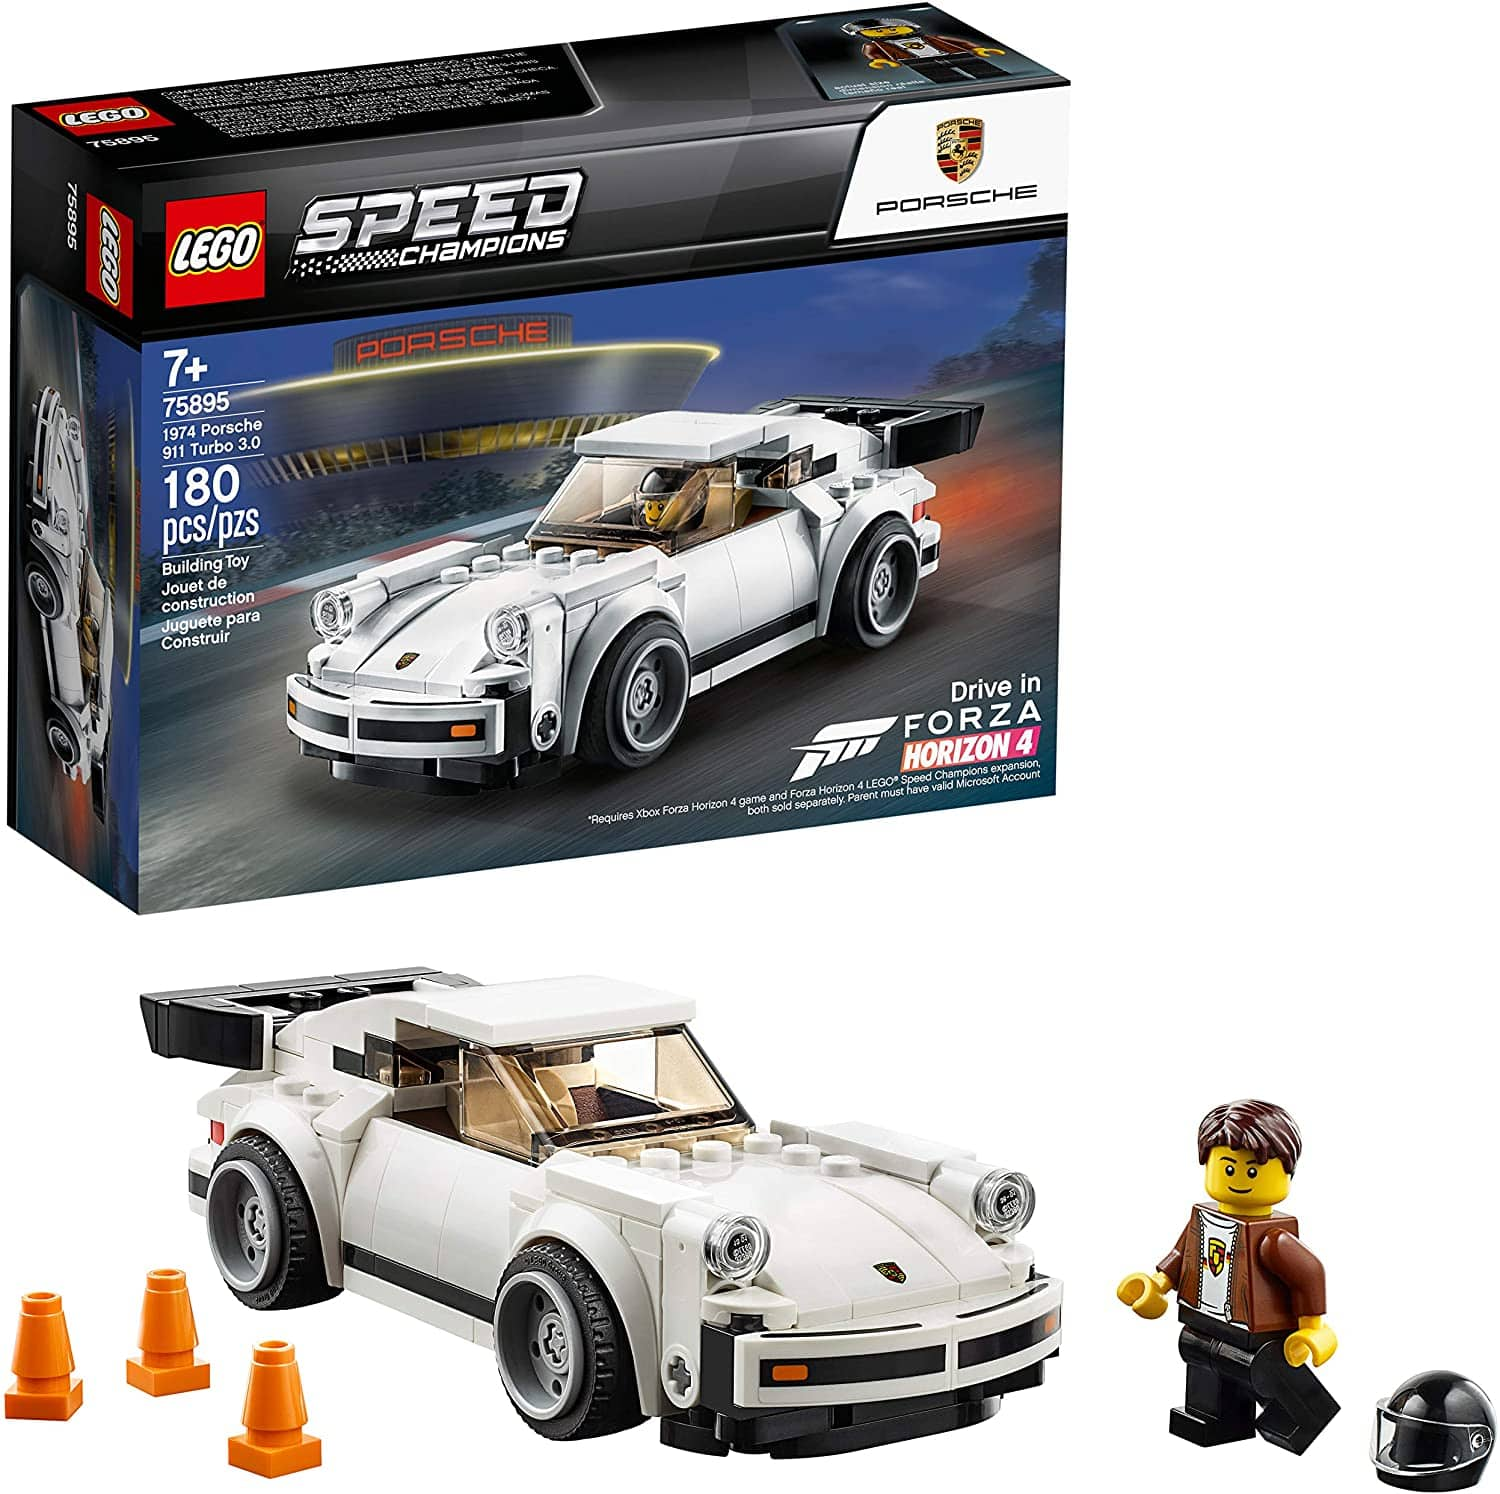 LEGO Speed Champions 1974 Porsche 911 Turbo 3.0 Building Kit $12 + Free Store Pickup